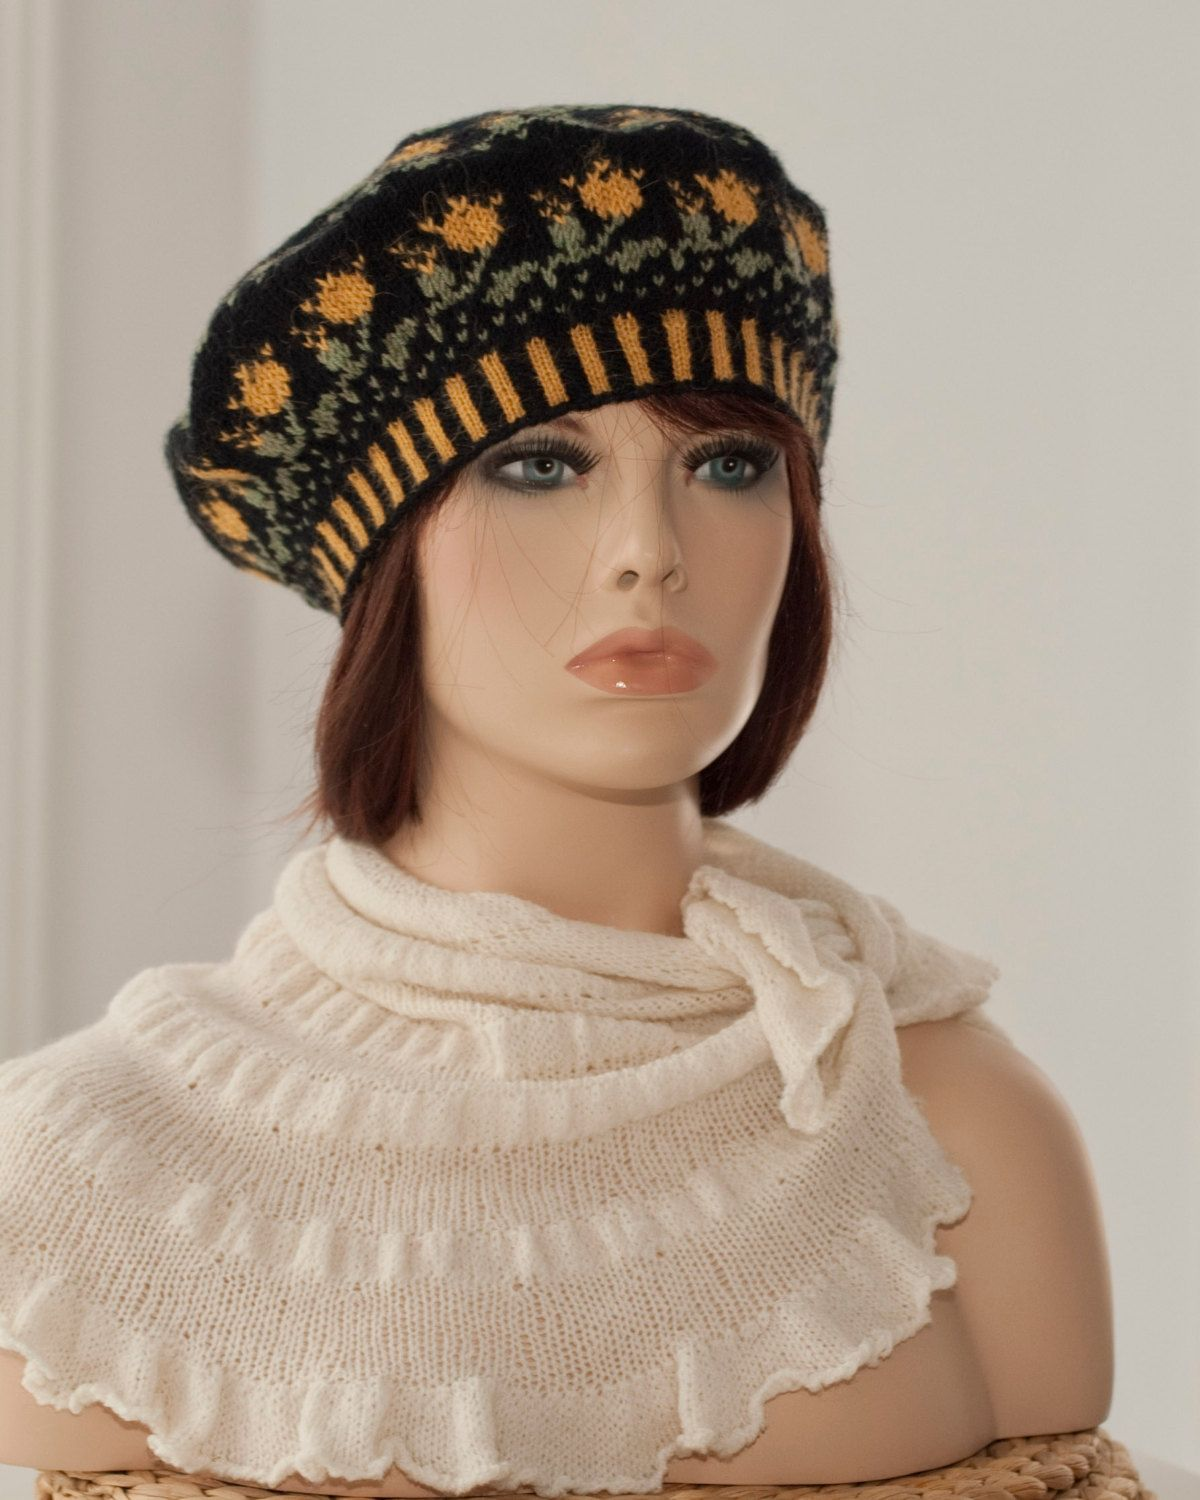 8b5ae165c50fc Hand knitted beret tam with the motifs of roses fair isle blackyellowgreen  colors woolen for women for girls spring fall winter.